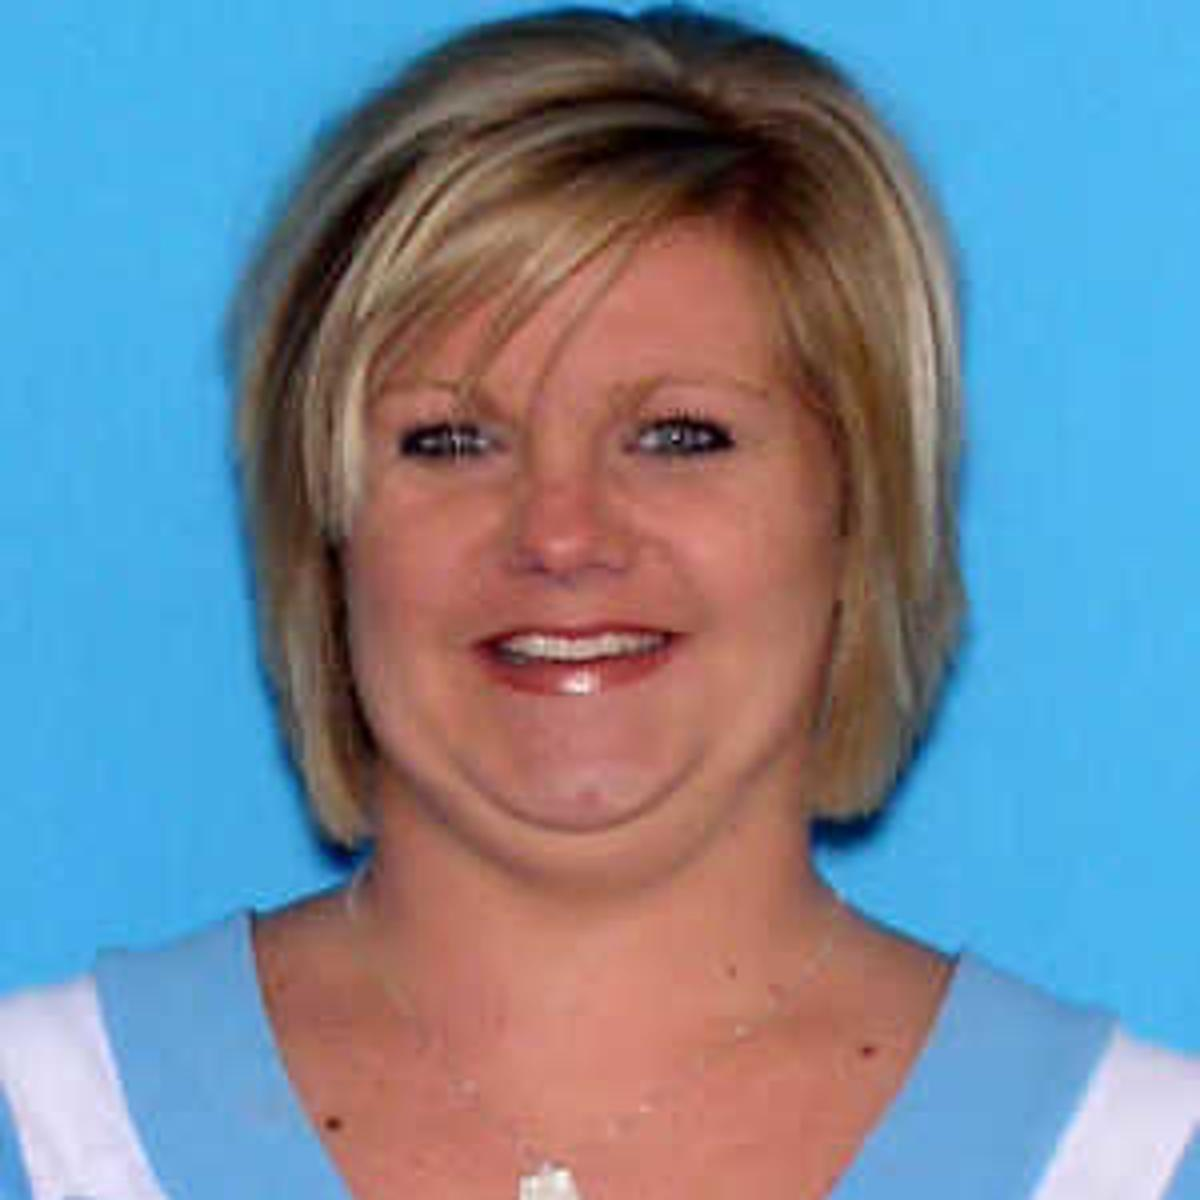 Police: Lab owner falsified drug screen test results to Dale County